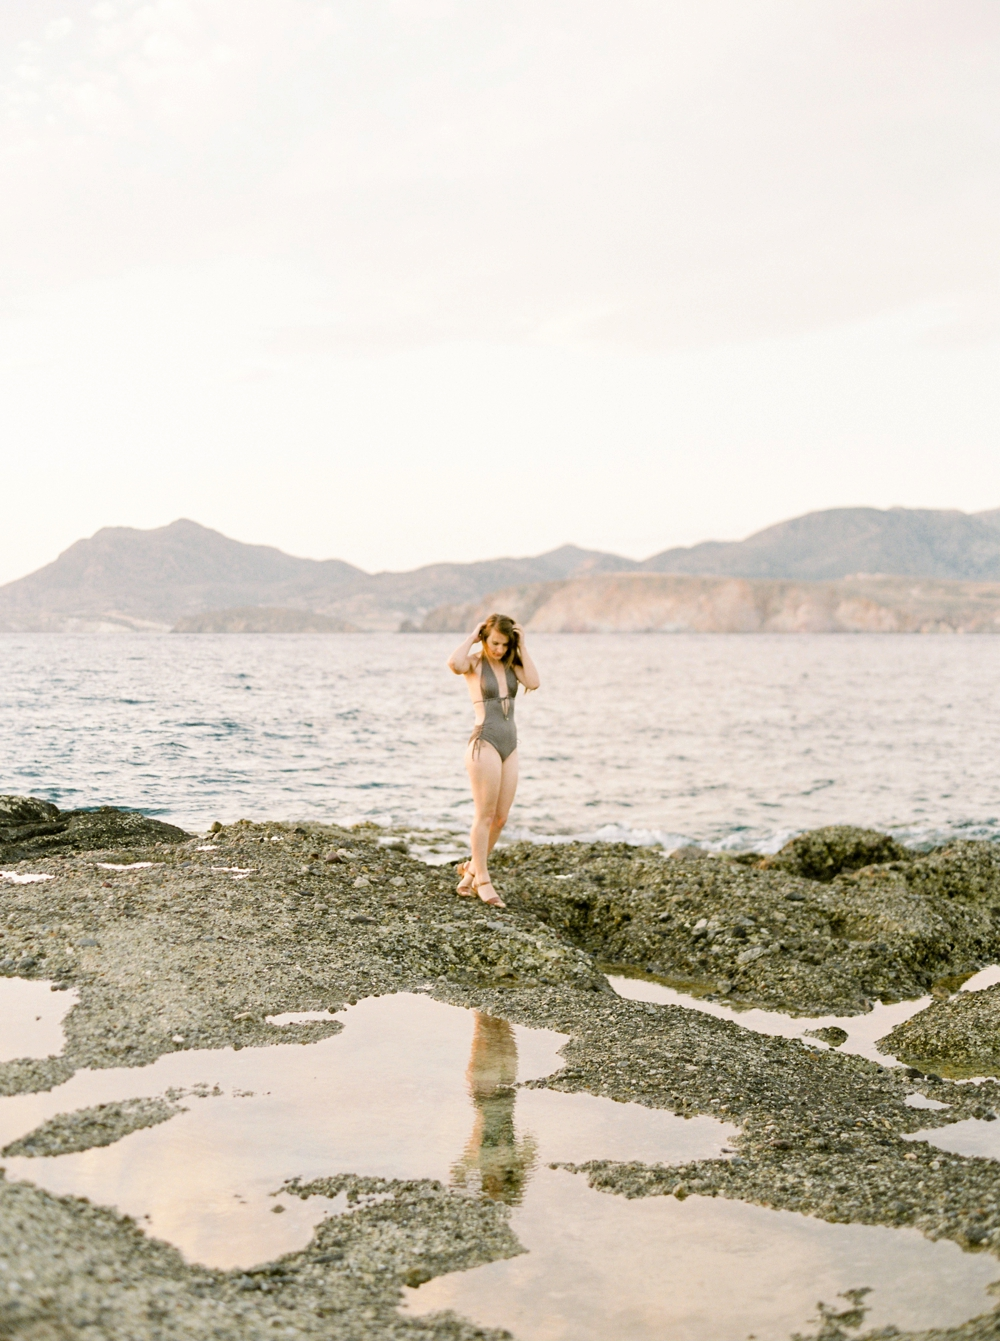 Greece destination wedding photographer | Milos sunset greek islands travel photography